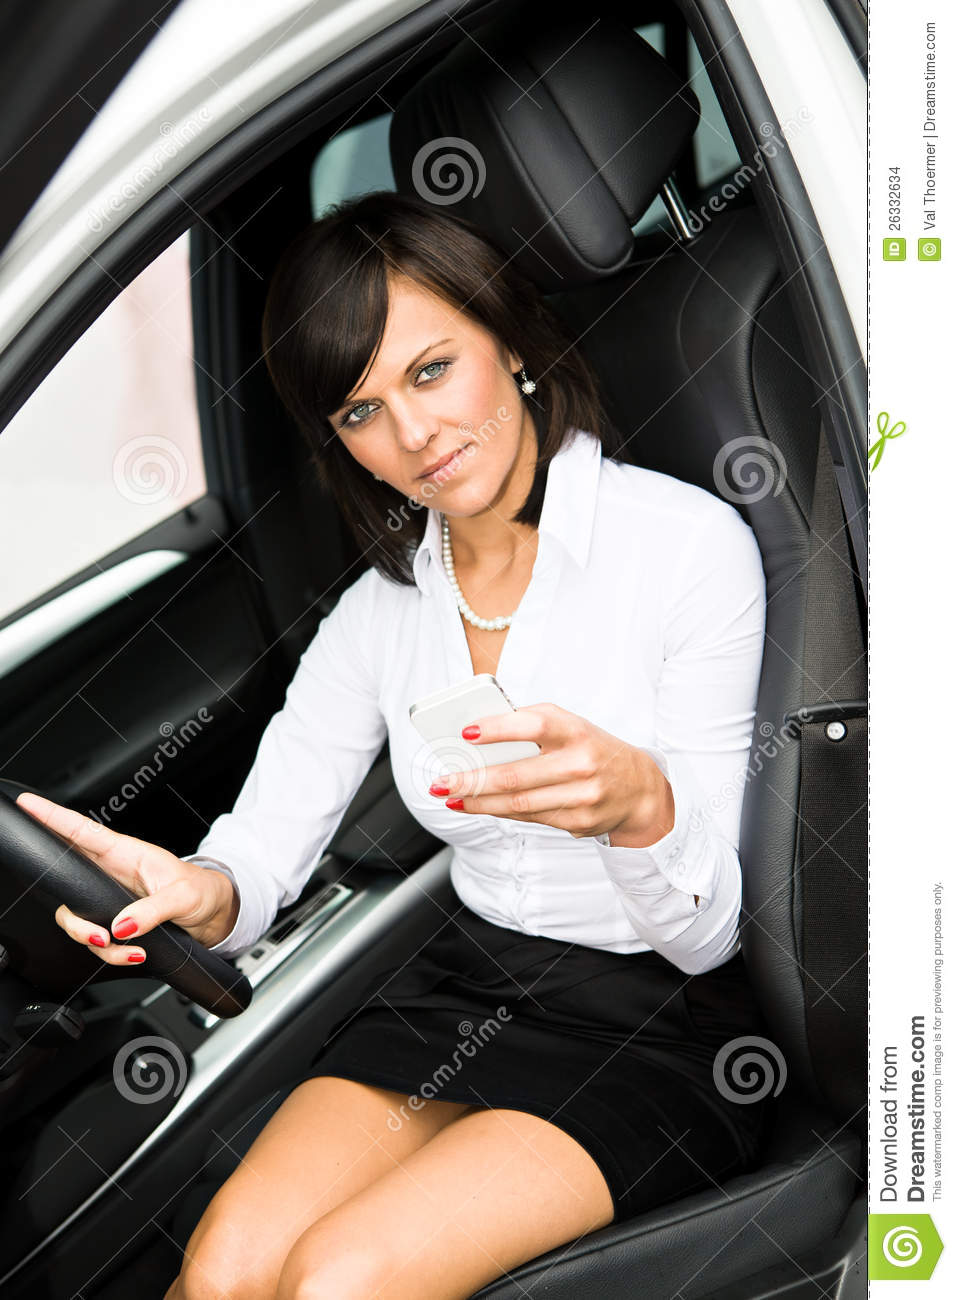 Girl Driving In Interiro Of The Car